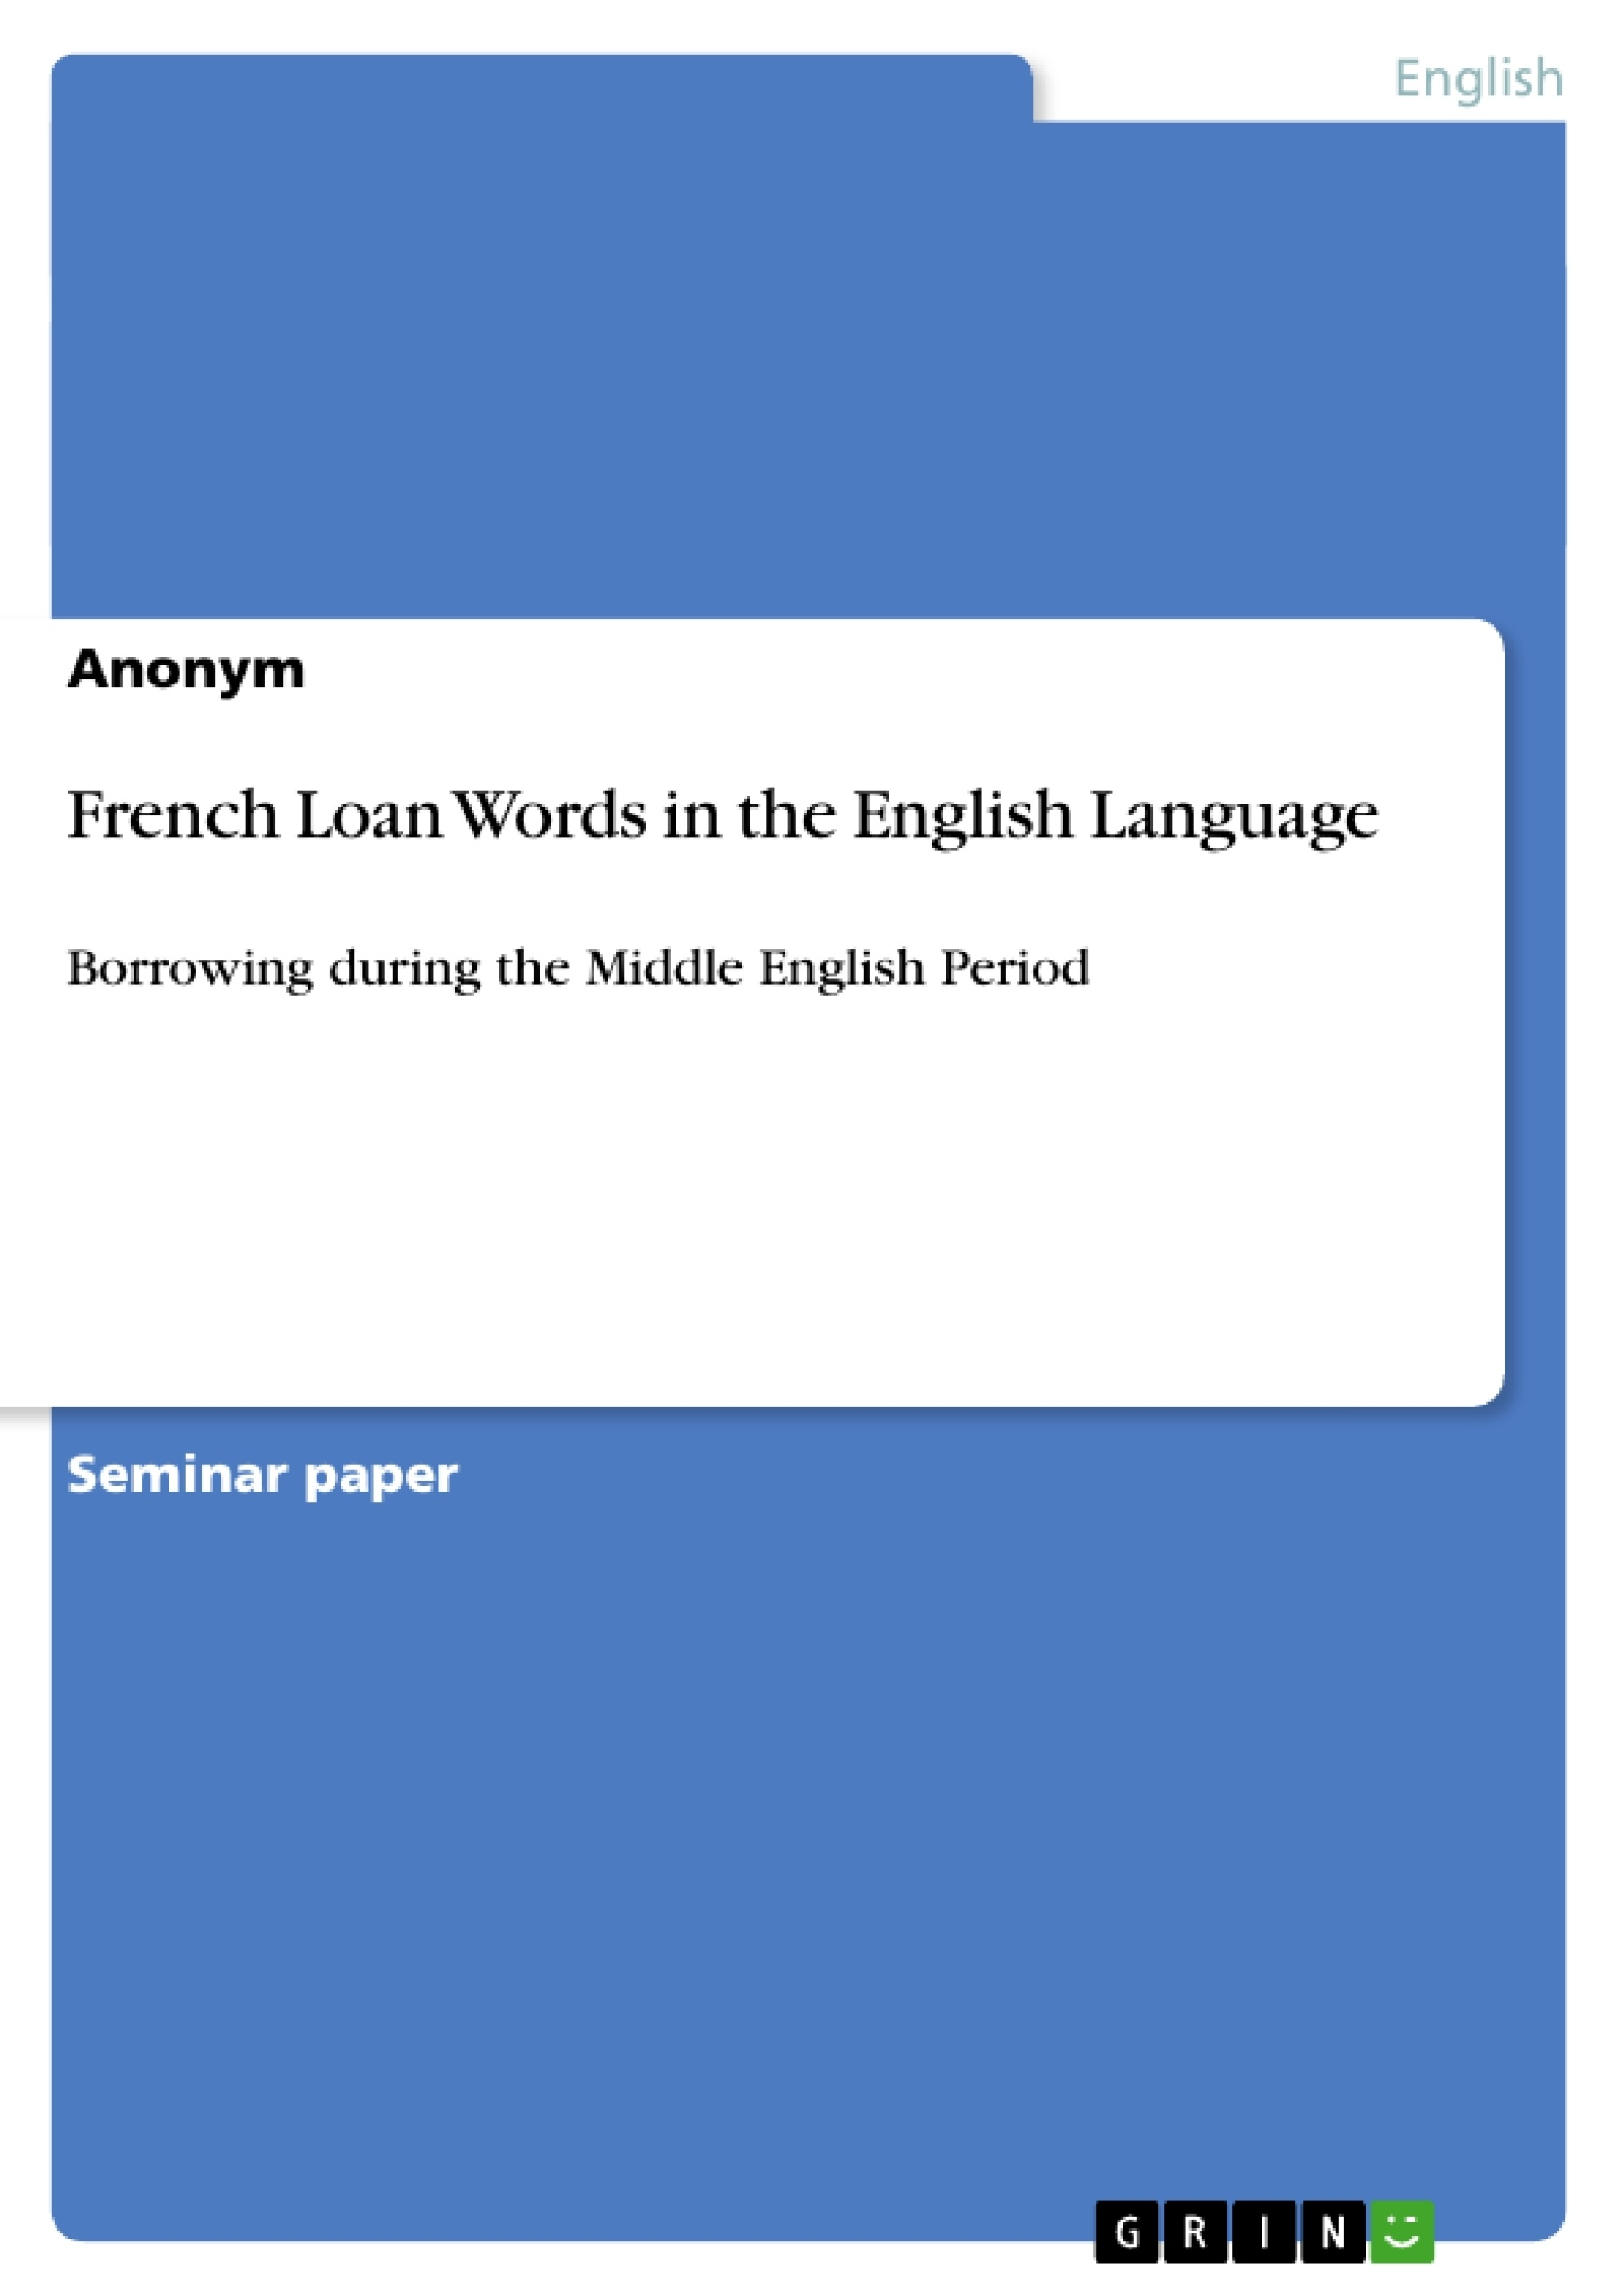 Title: French Loan Words in the English Language